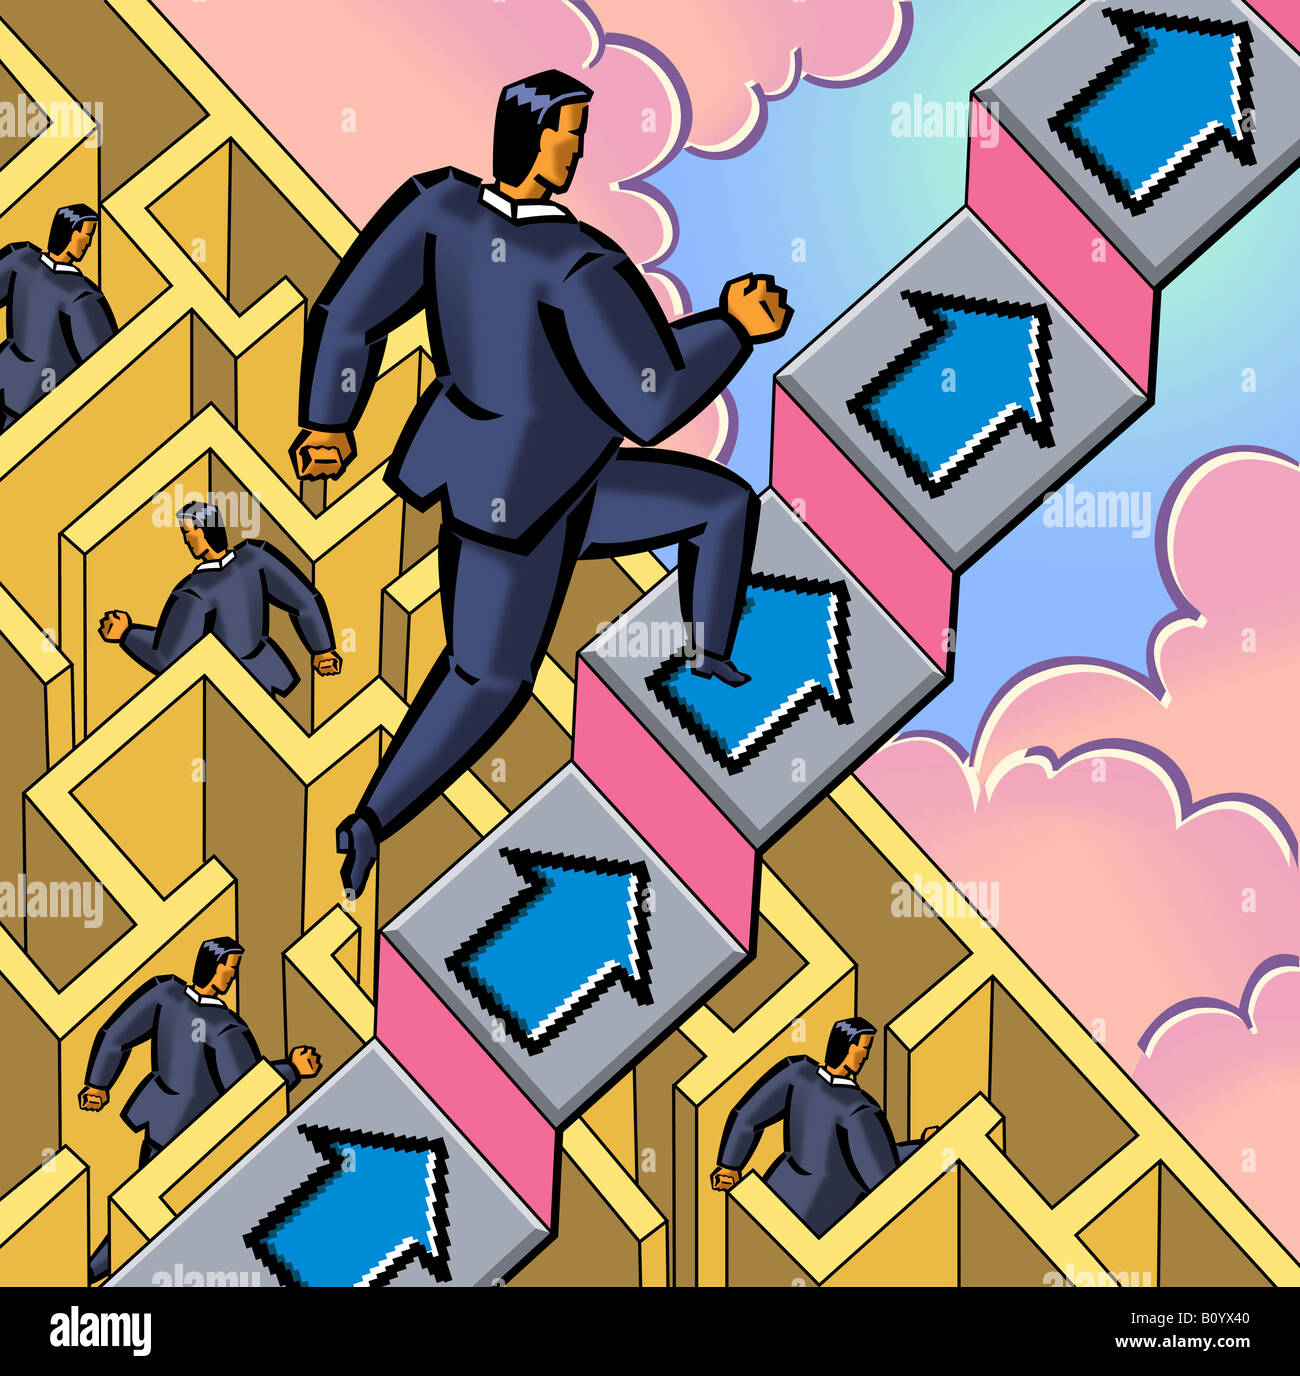 Businessman running up stairs, labyrinth in background - Stock Image